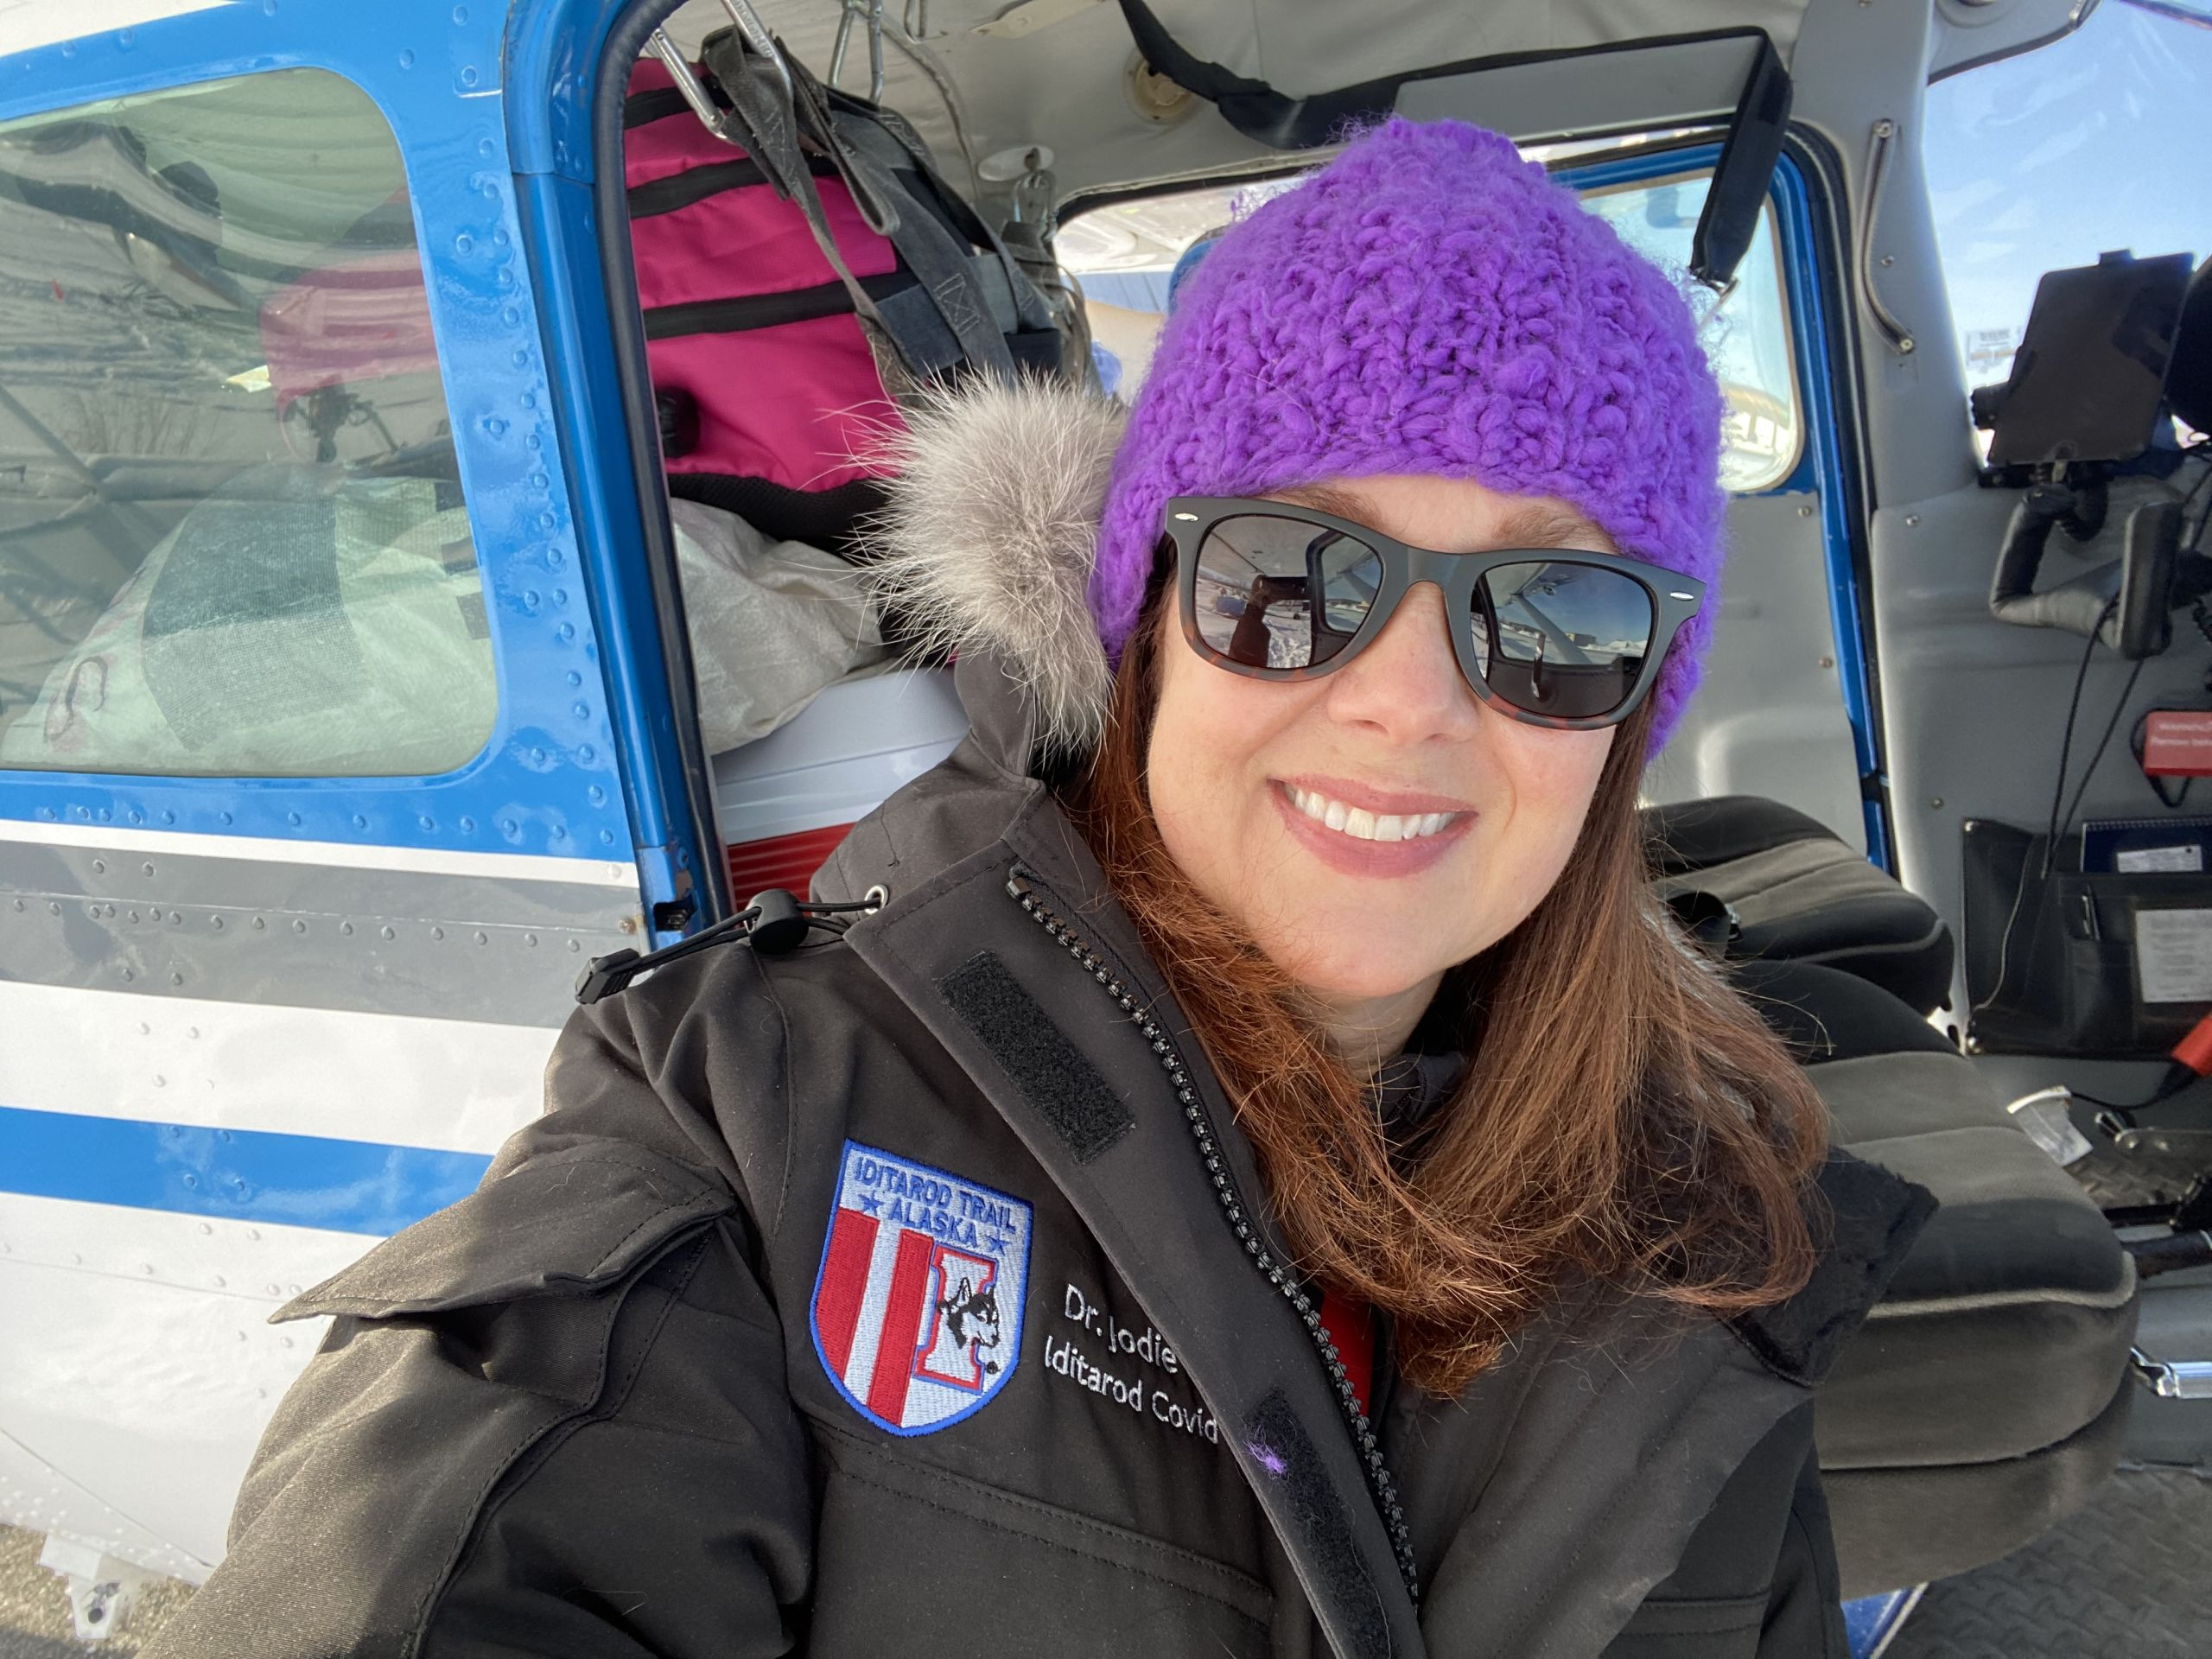 Jodie Guest poses by the door of a small airplane. She is wearing a winter hat, sunglasses and a winter coat with a patch with the Iditarod logo